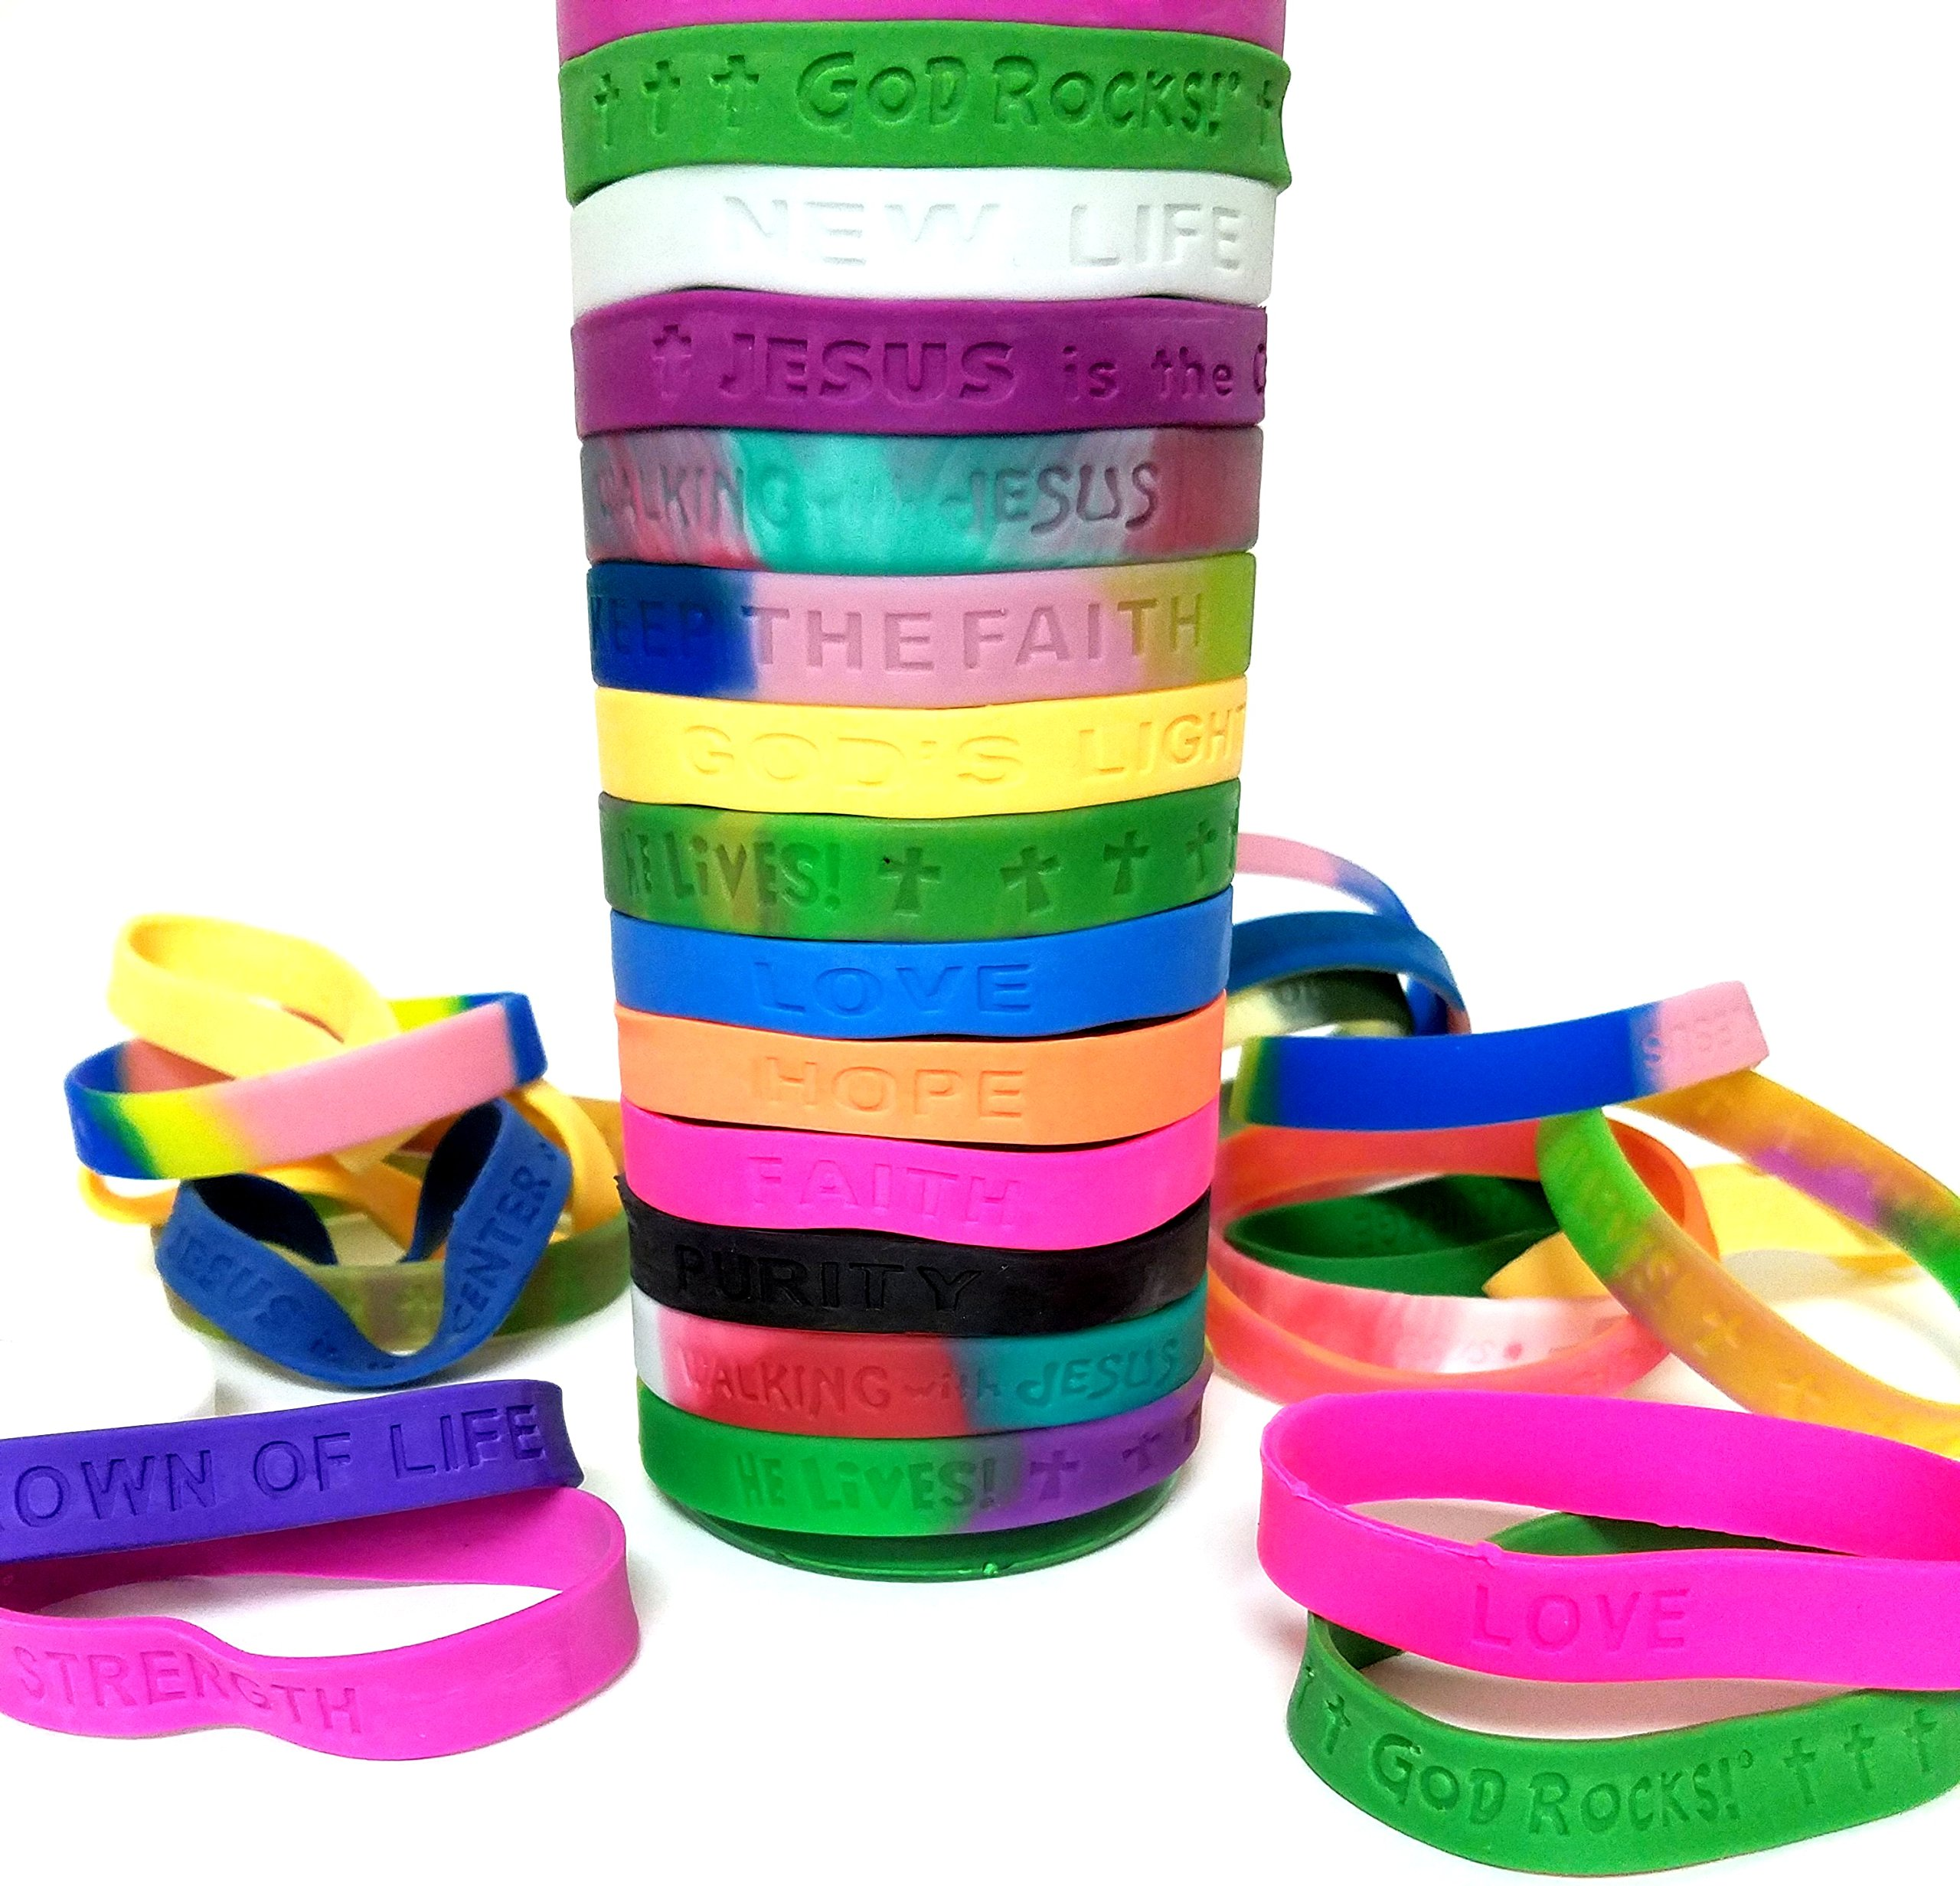 Playscene Religious Expressions Rubber Bracelets (Medium) by Playscene